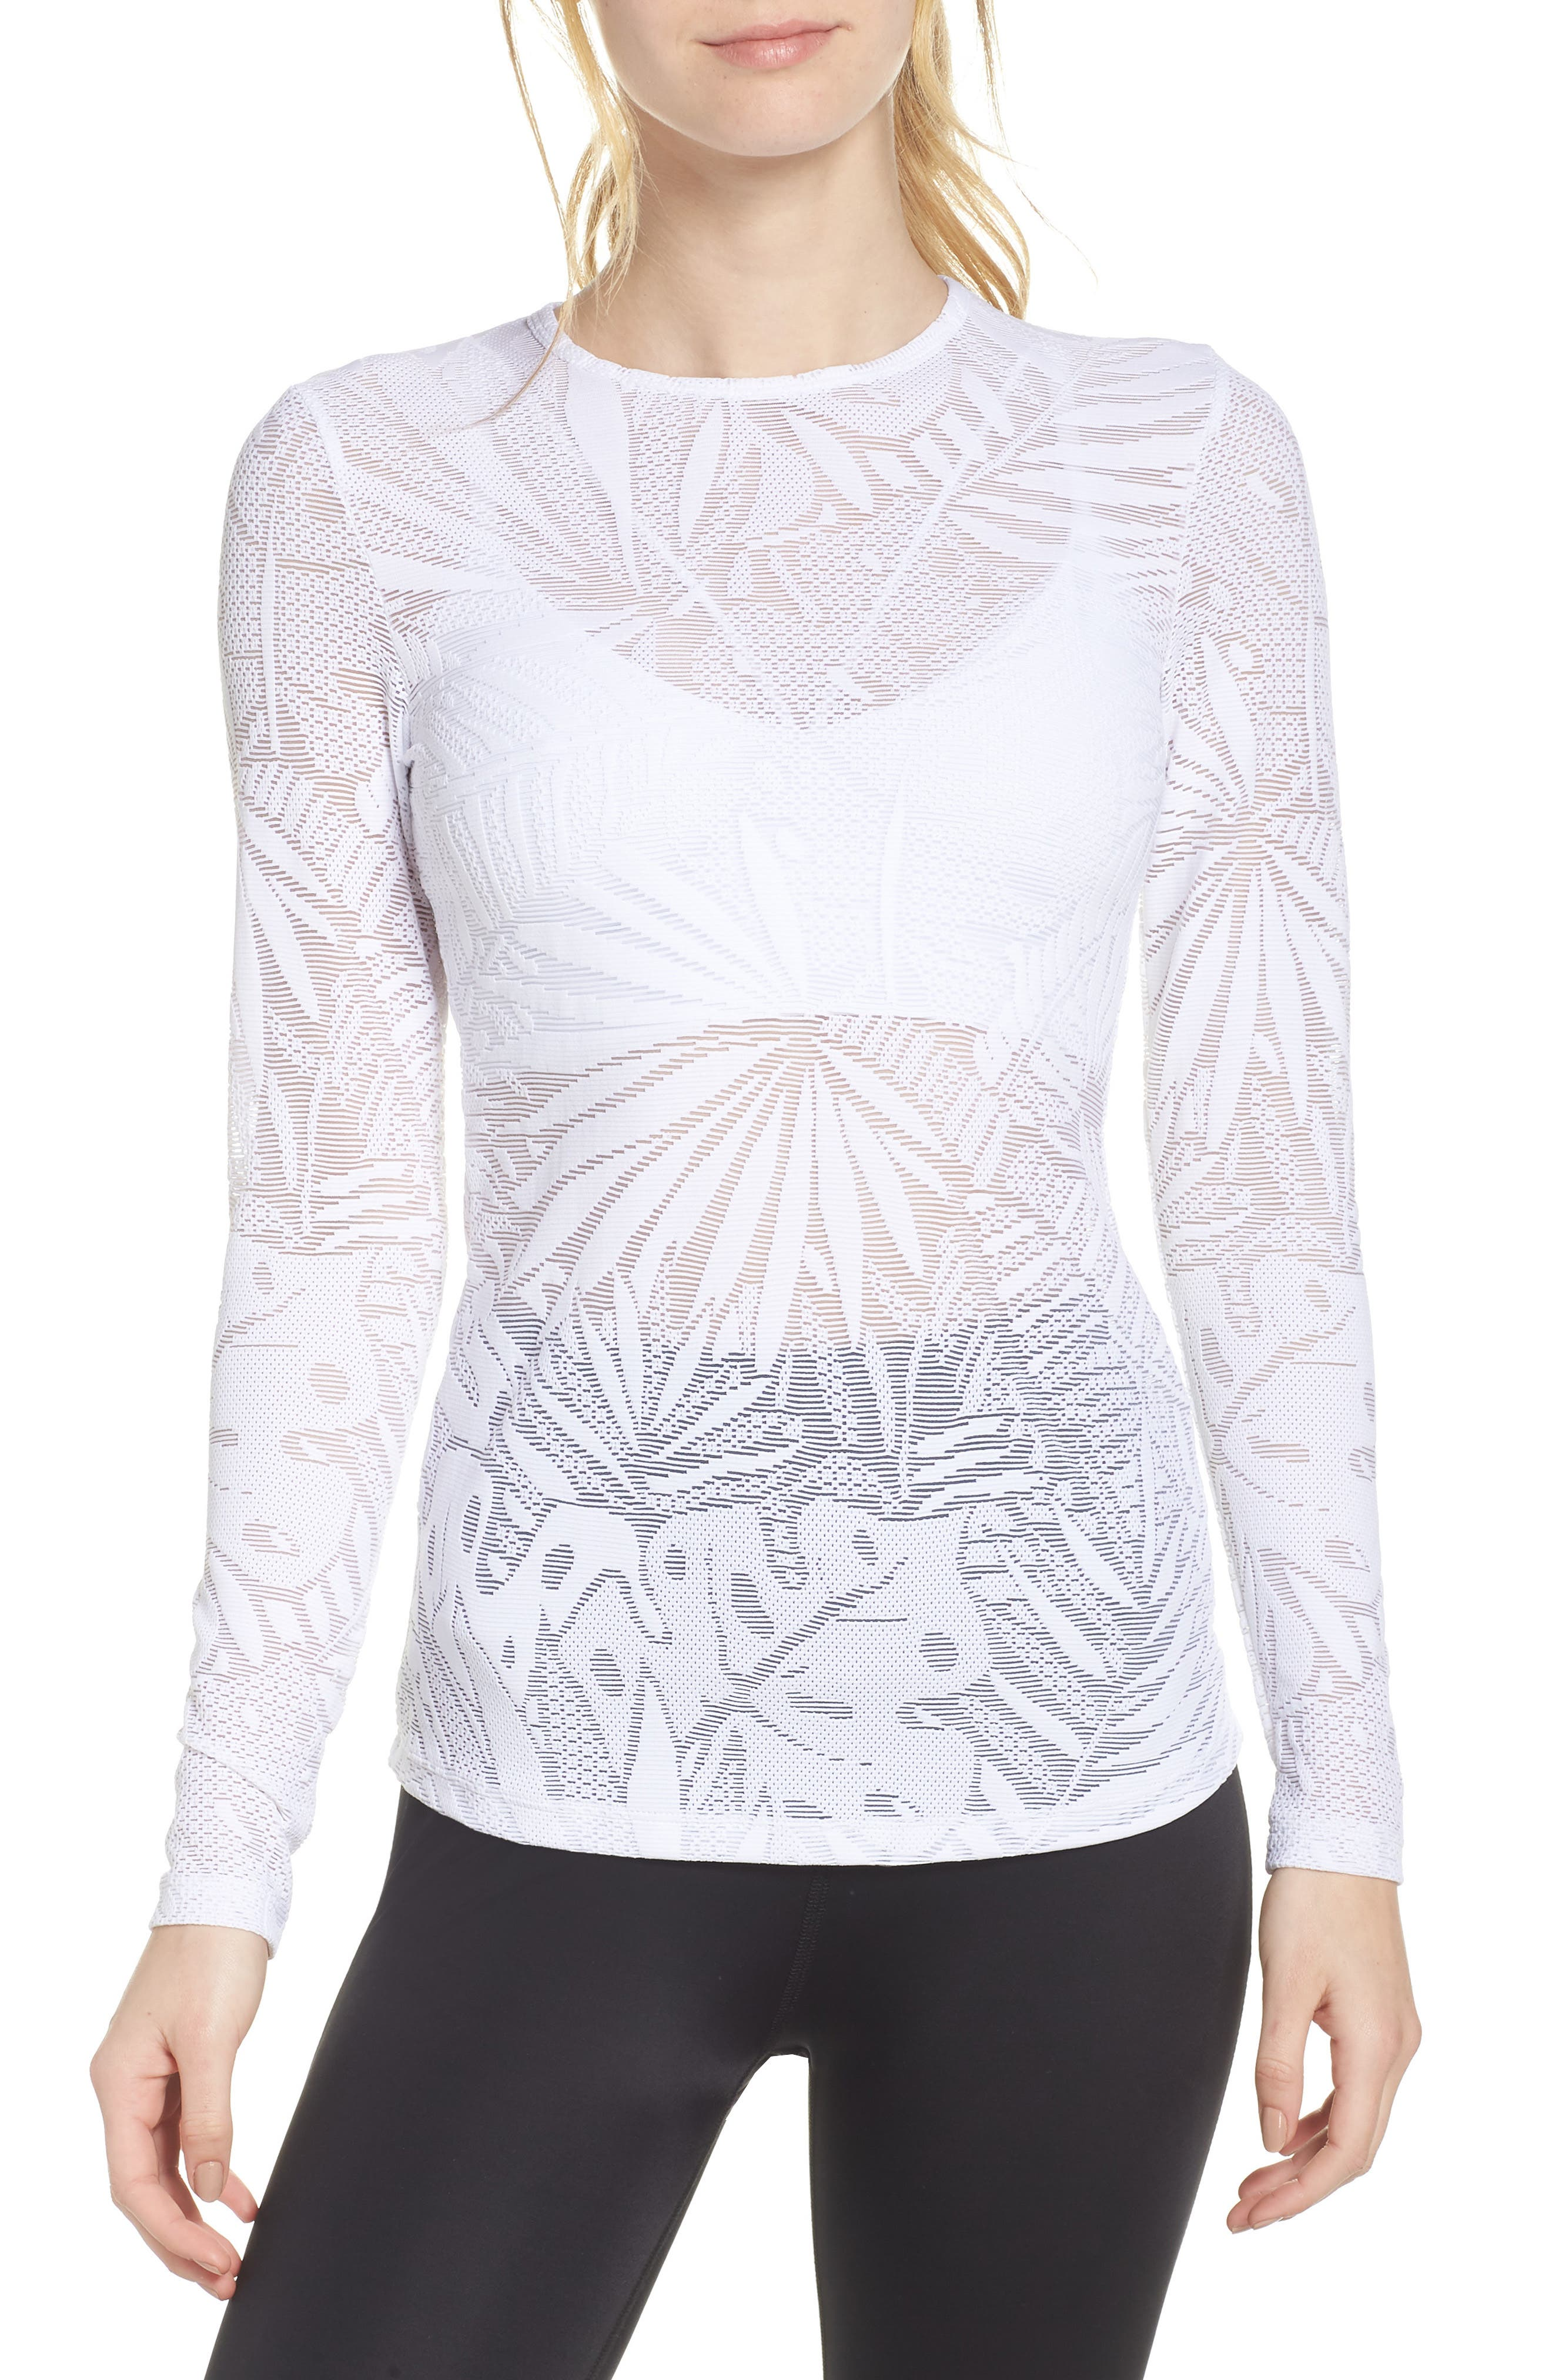 Oasis Mesh Pullover,                         Main,                         color, White